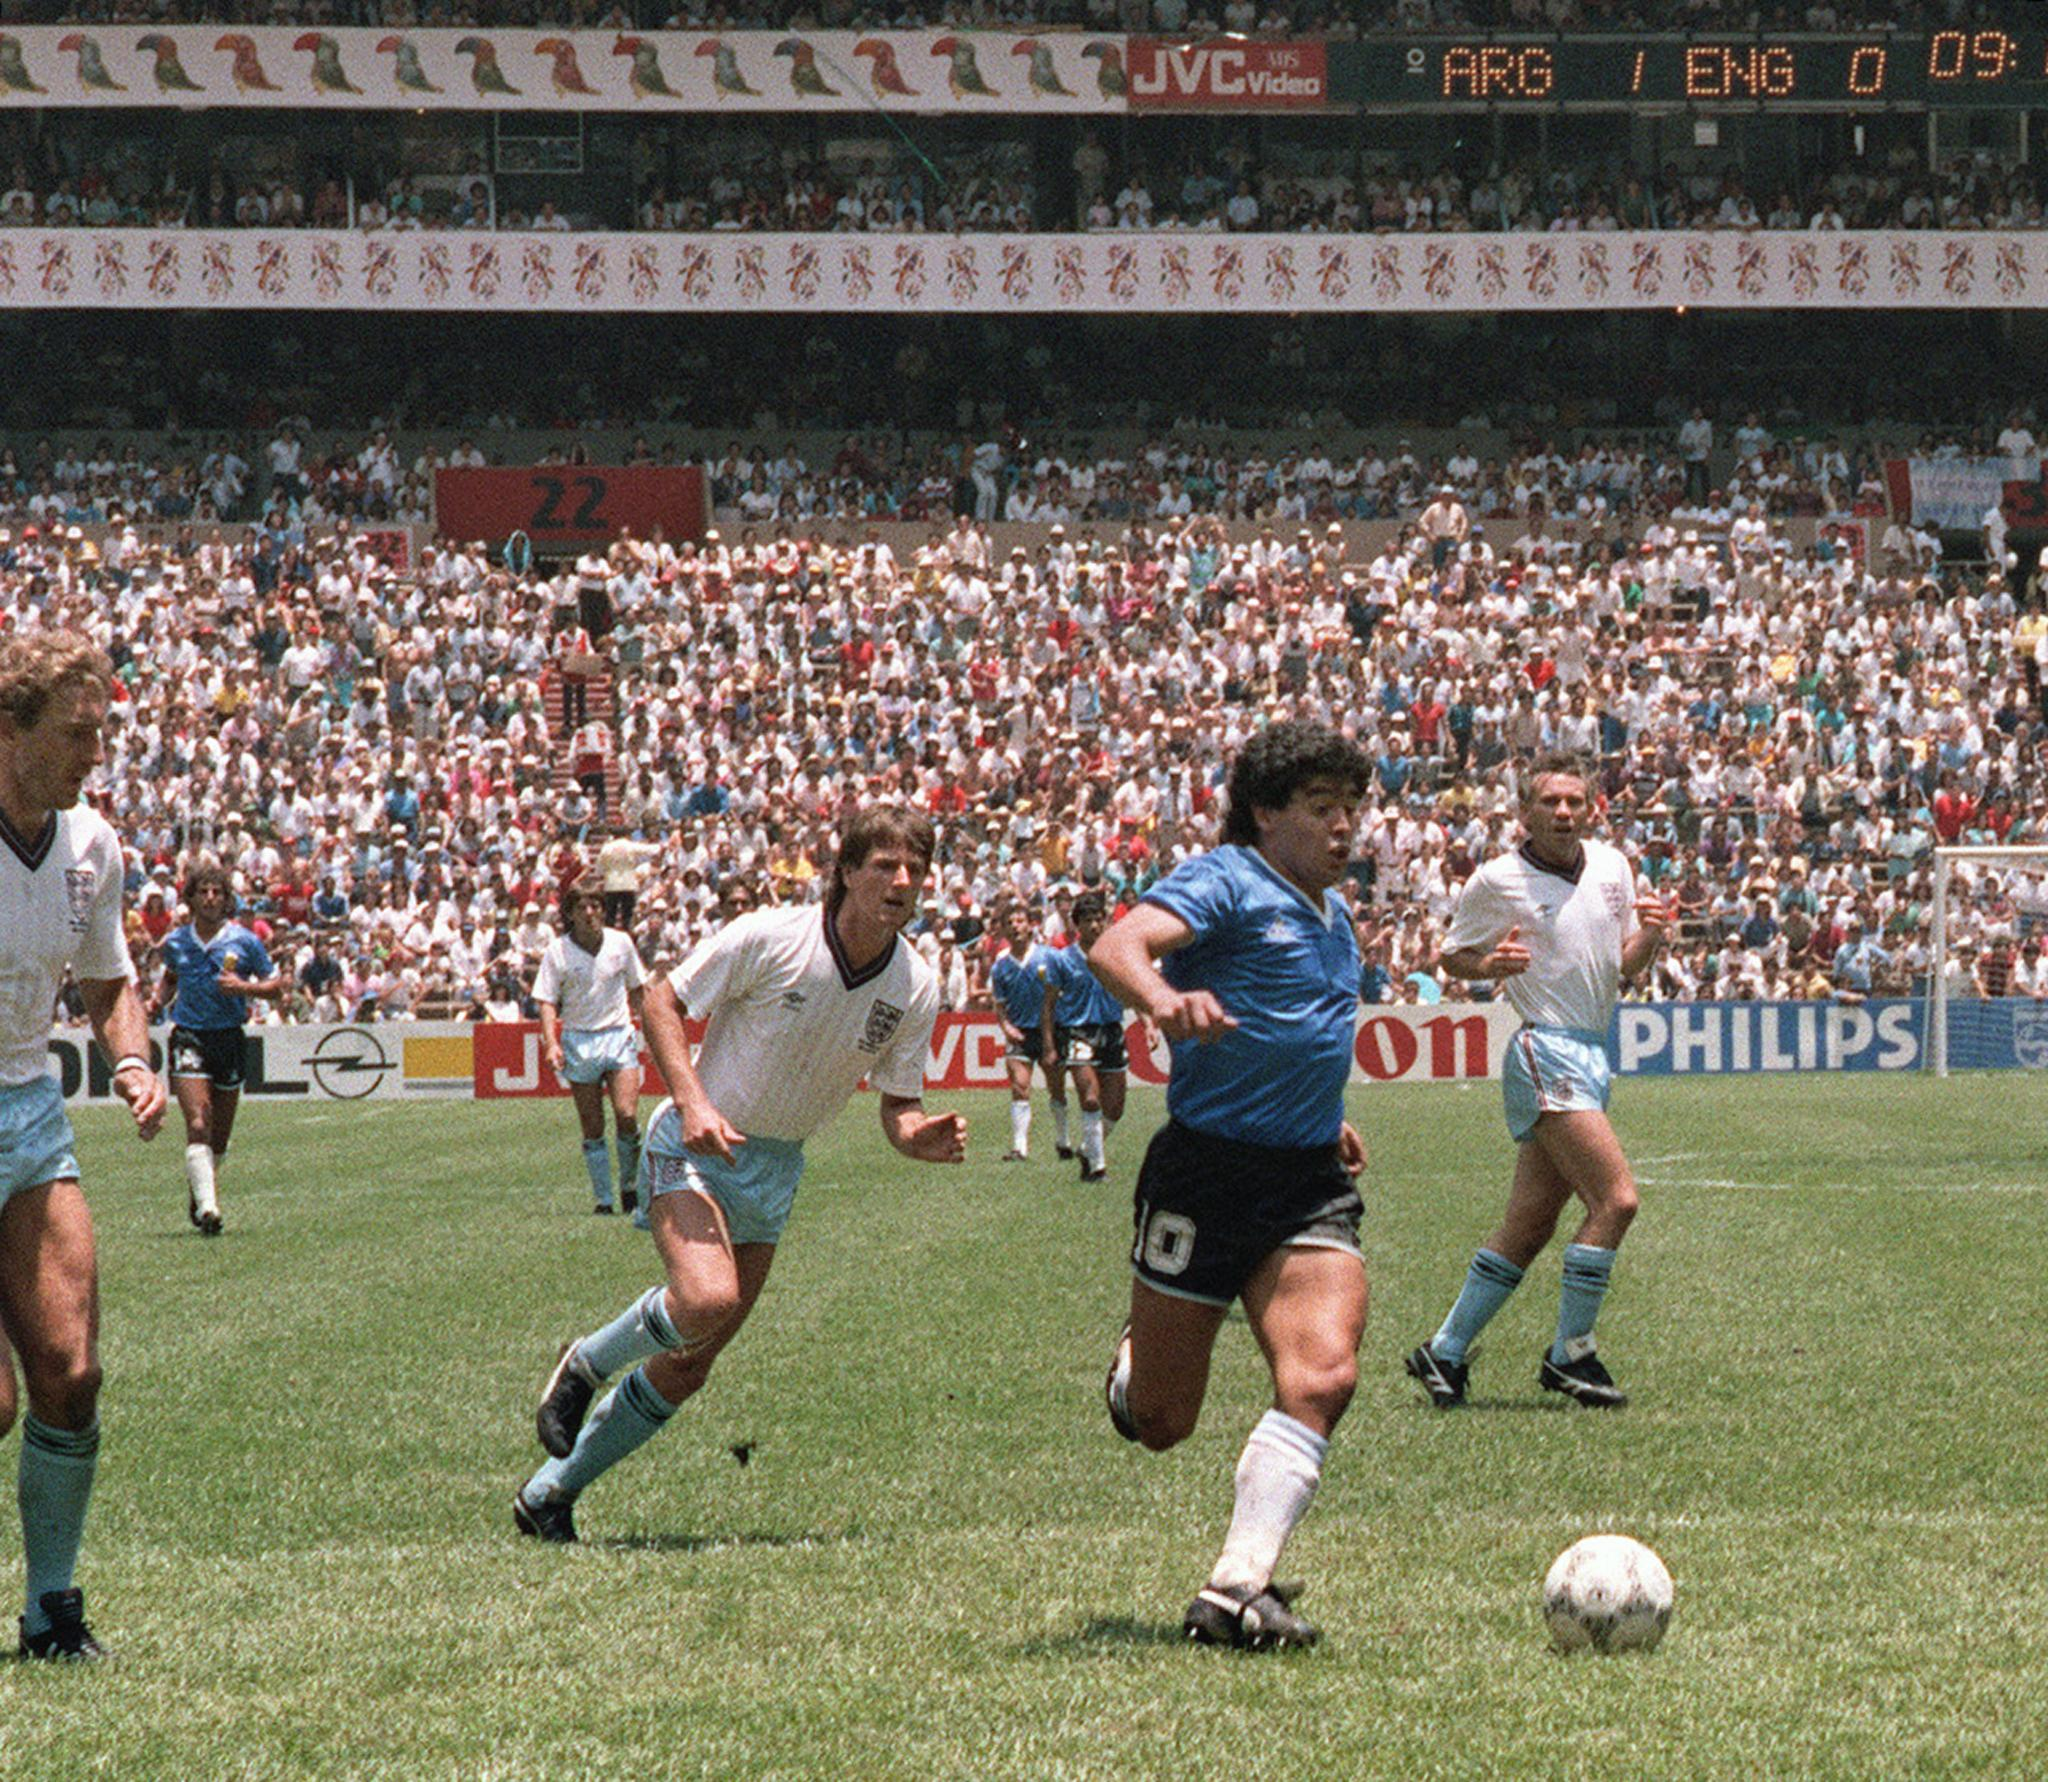 Argentinian forward Diego Armando Maradona runs past English defenders Terry Butcher (L) and Terry Fenwick (2nd L) on his way to scoring his second goal during the World Cup quarterfinal soccer match between Argentina and England 22 June 1986 in Mexico City. (AFP/Getty Images)